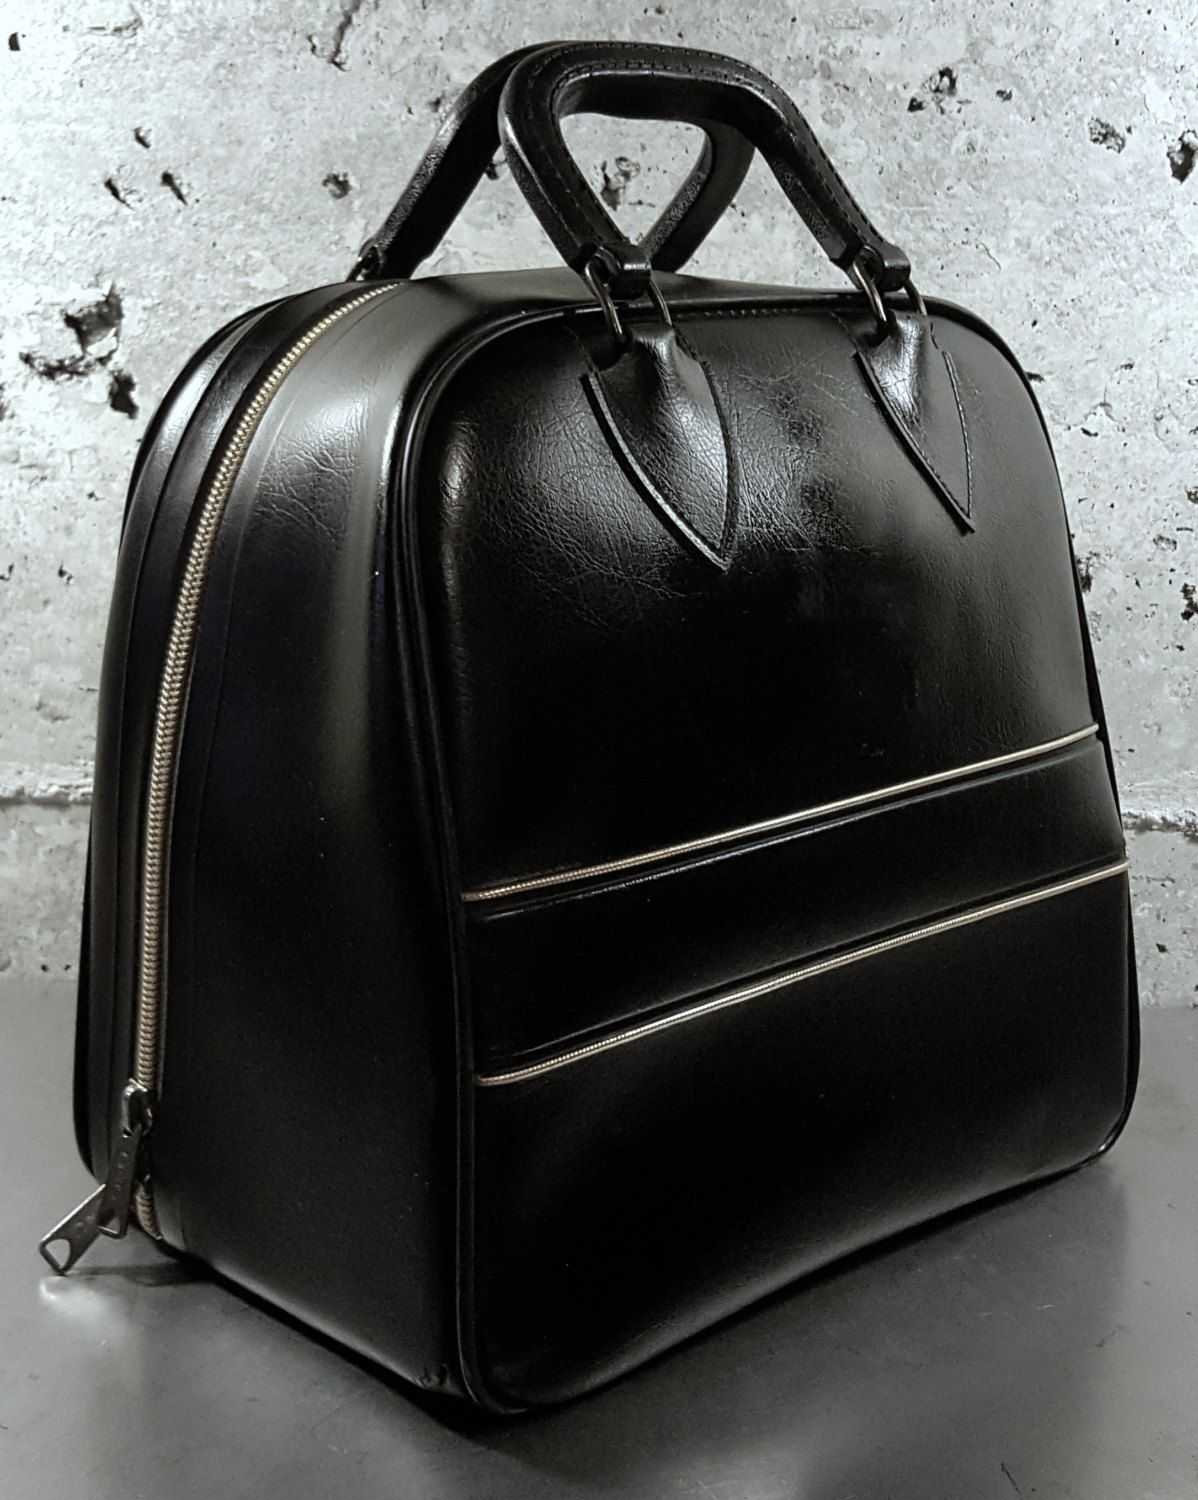 Vintage C Bowling Ball Bag W Black Faux Leather Vinyl And Gold Piping Trim Heavy Duty Metal Plate Rack Side Pocket Shoe Cubby By Midmodery On